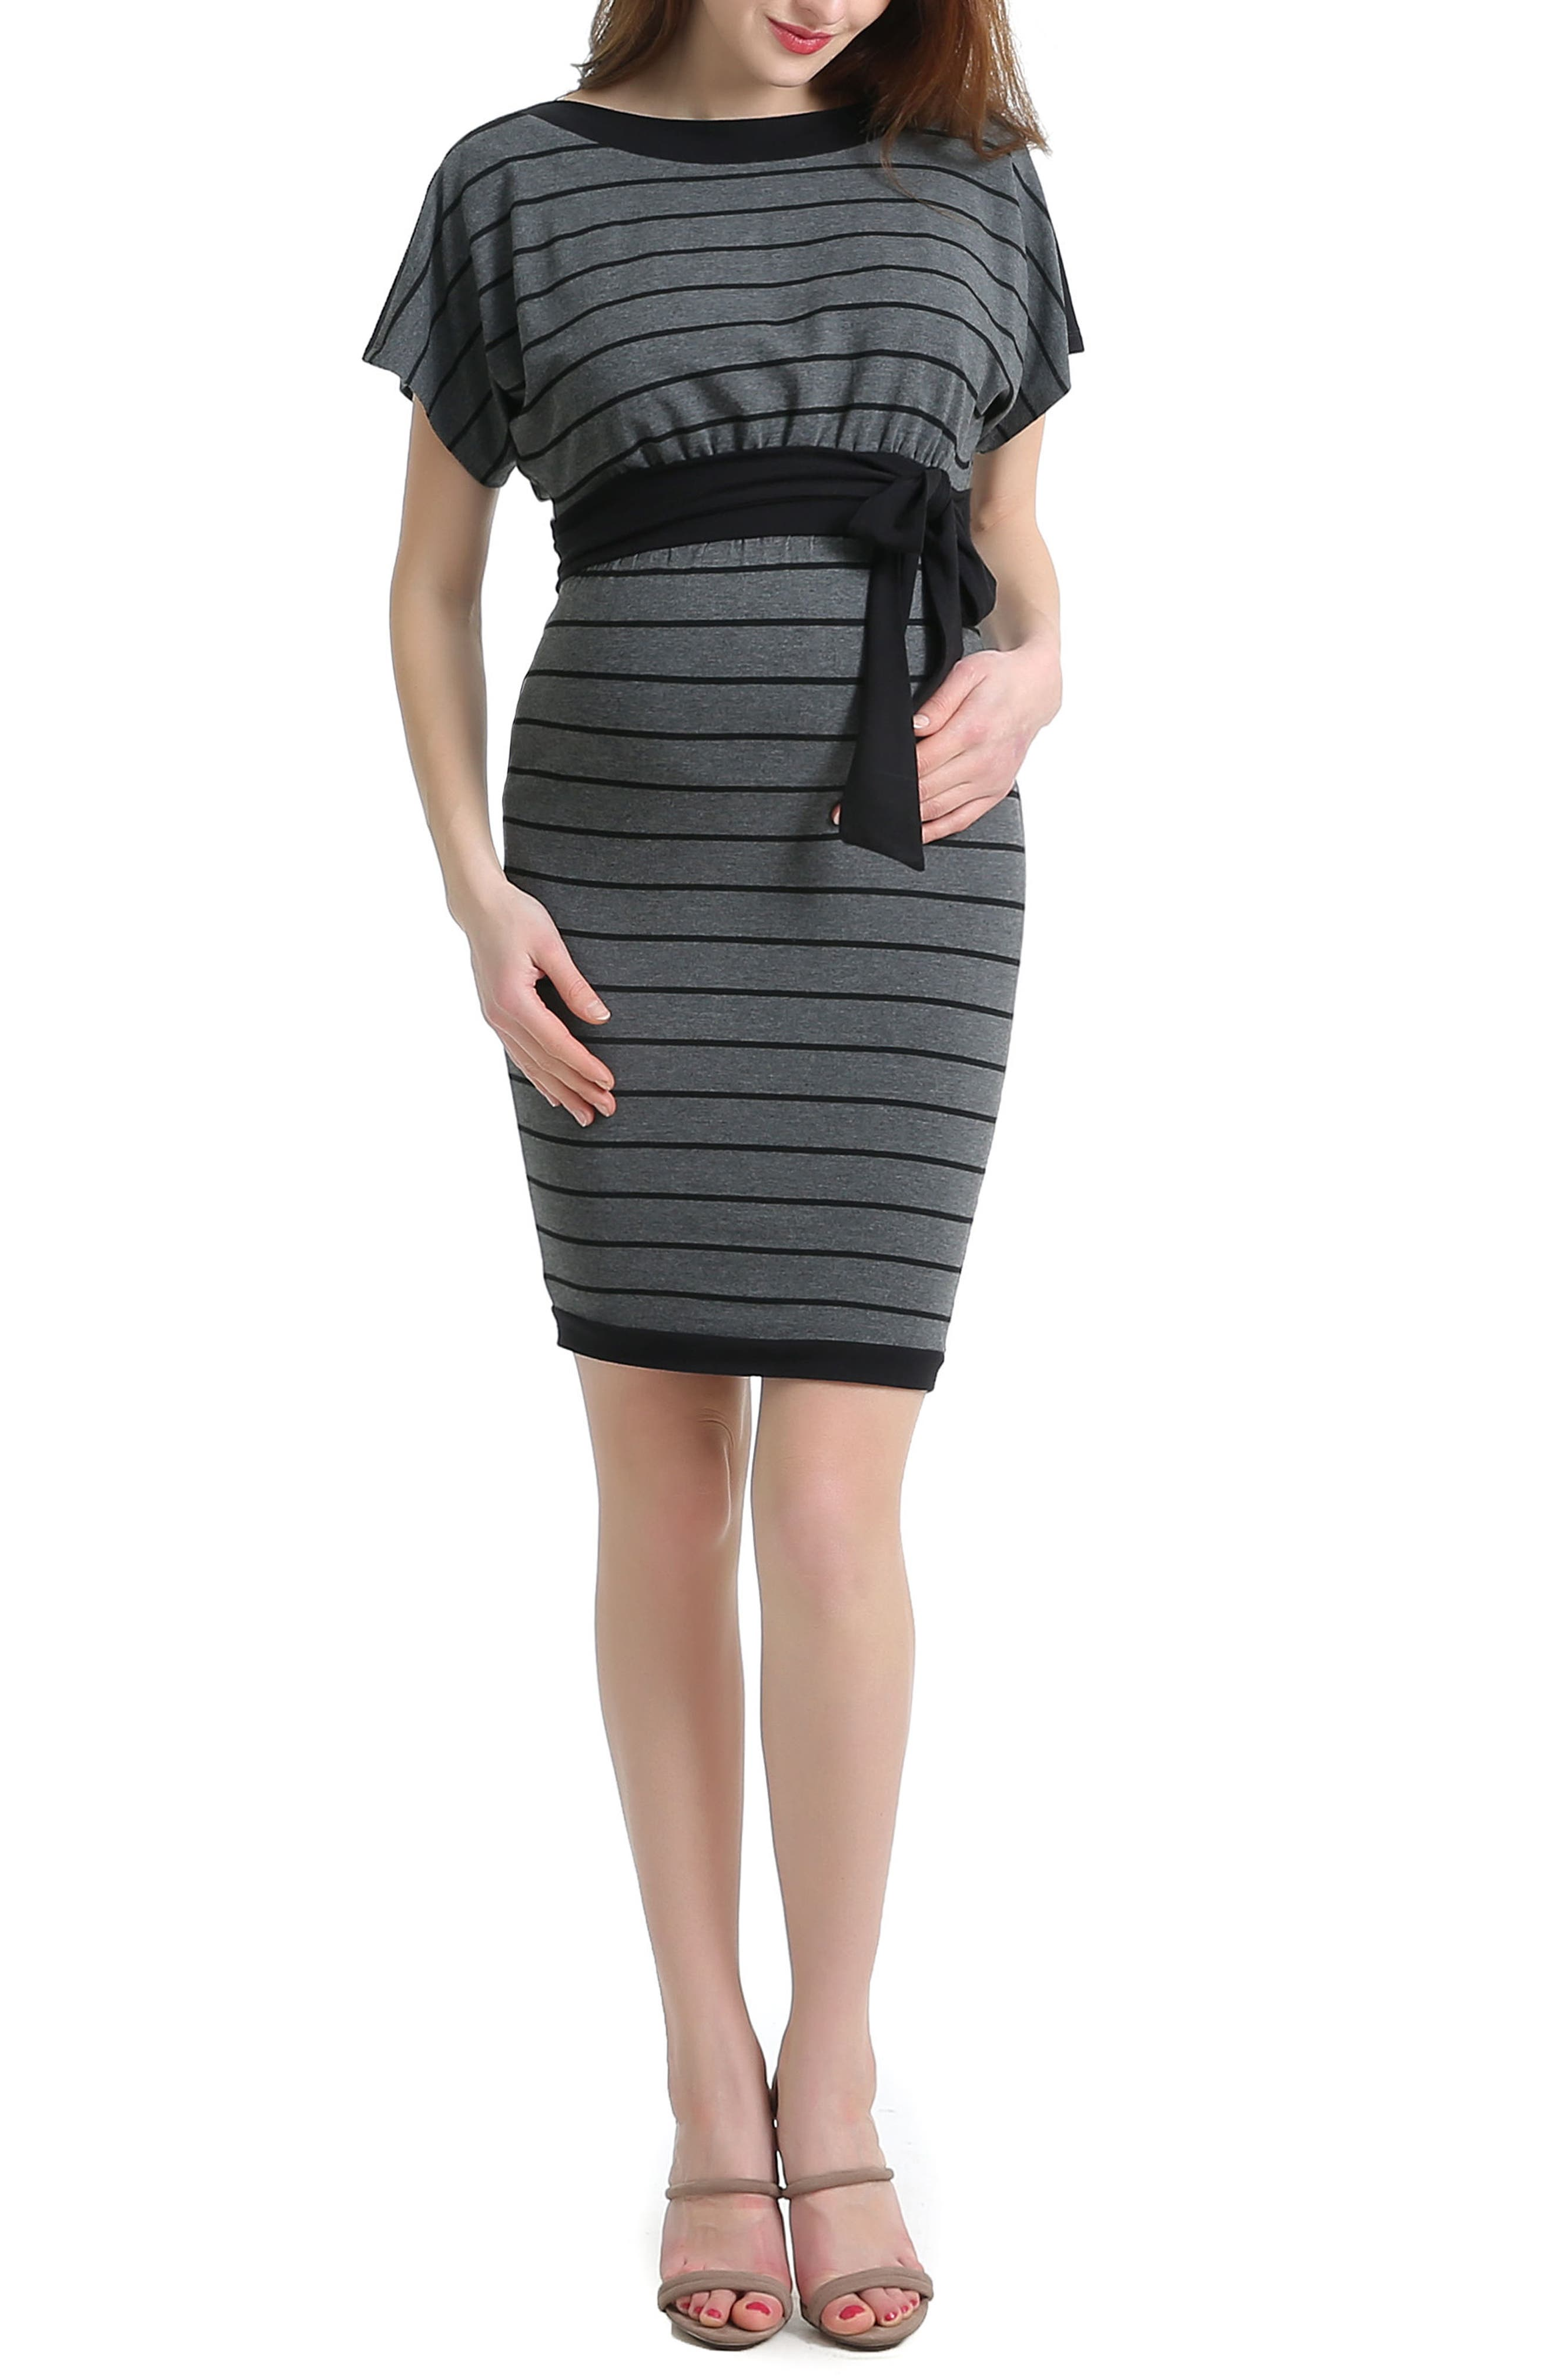 Anna Stretch Maternity Dress,                         Main,                         color, BLACK/ GRAY